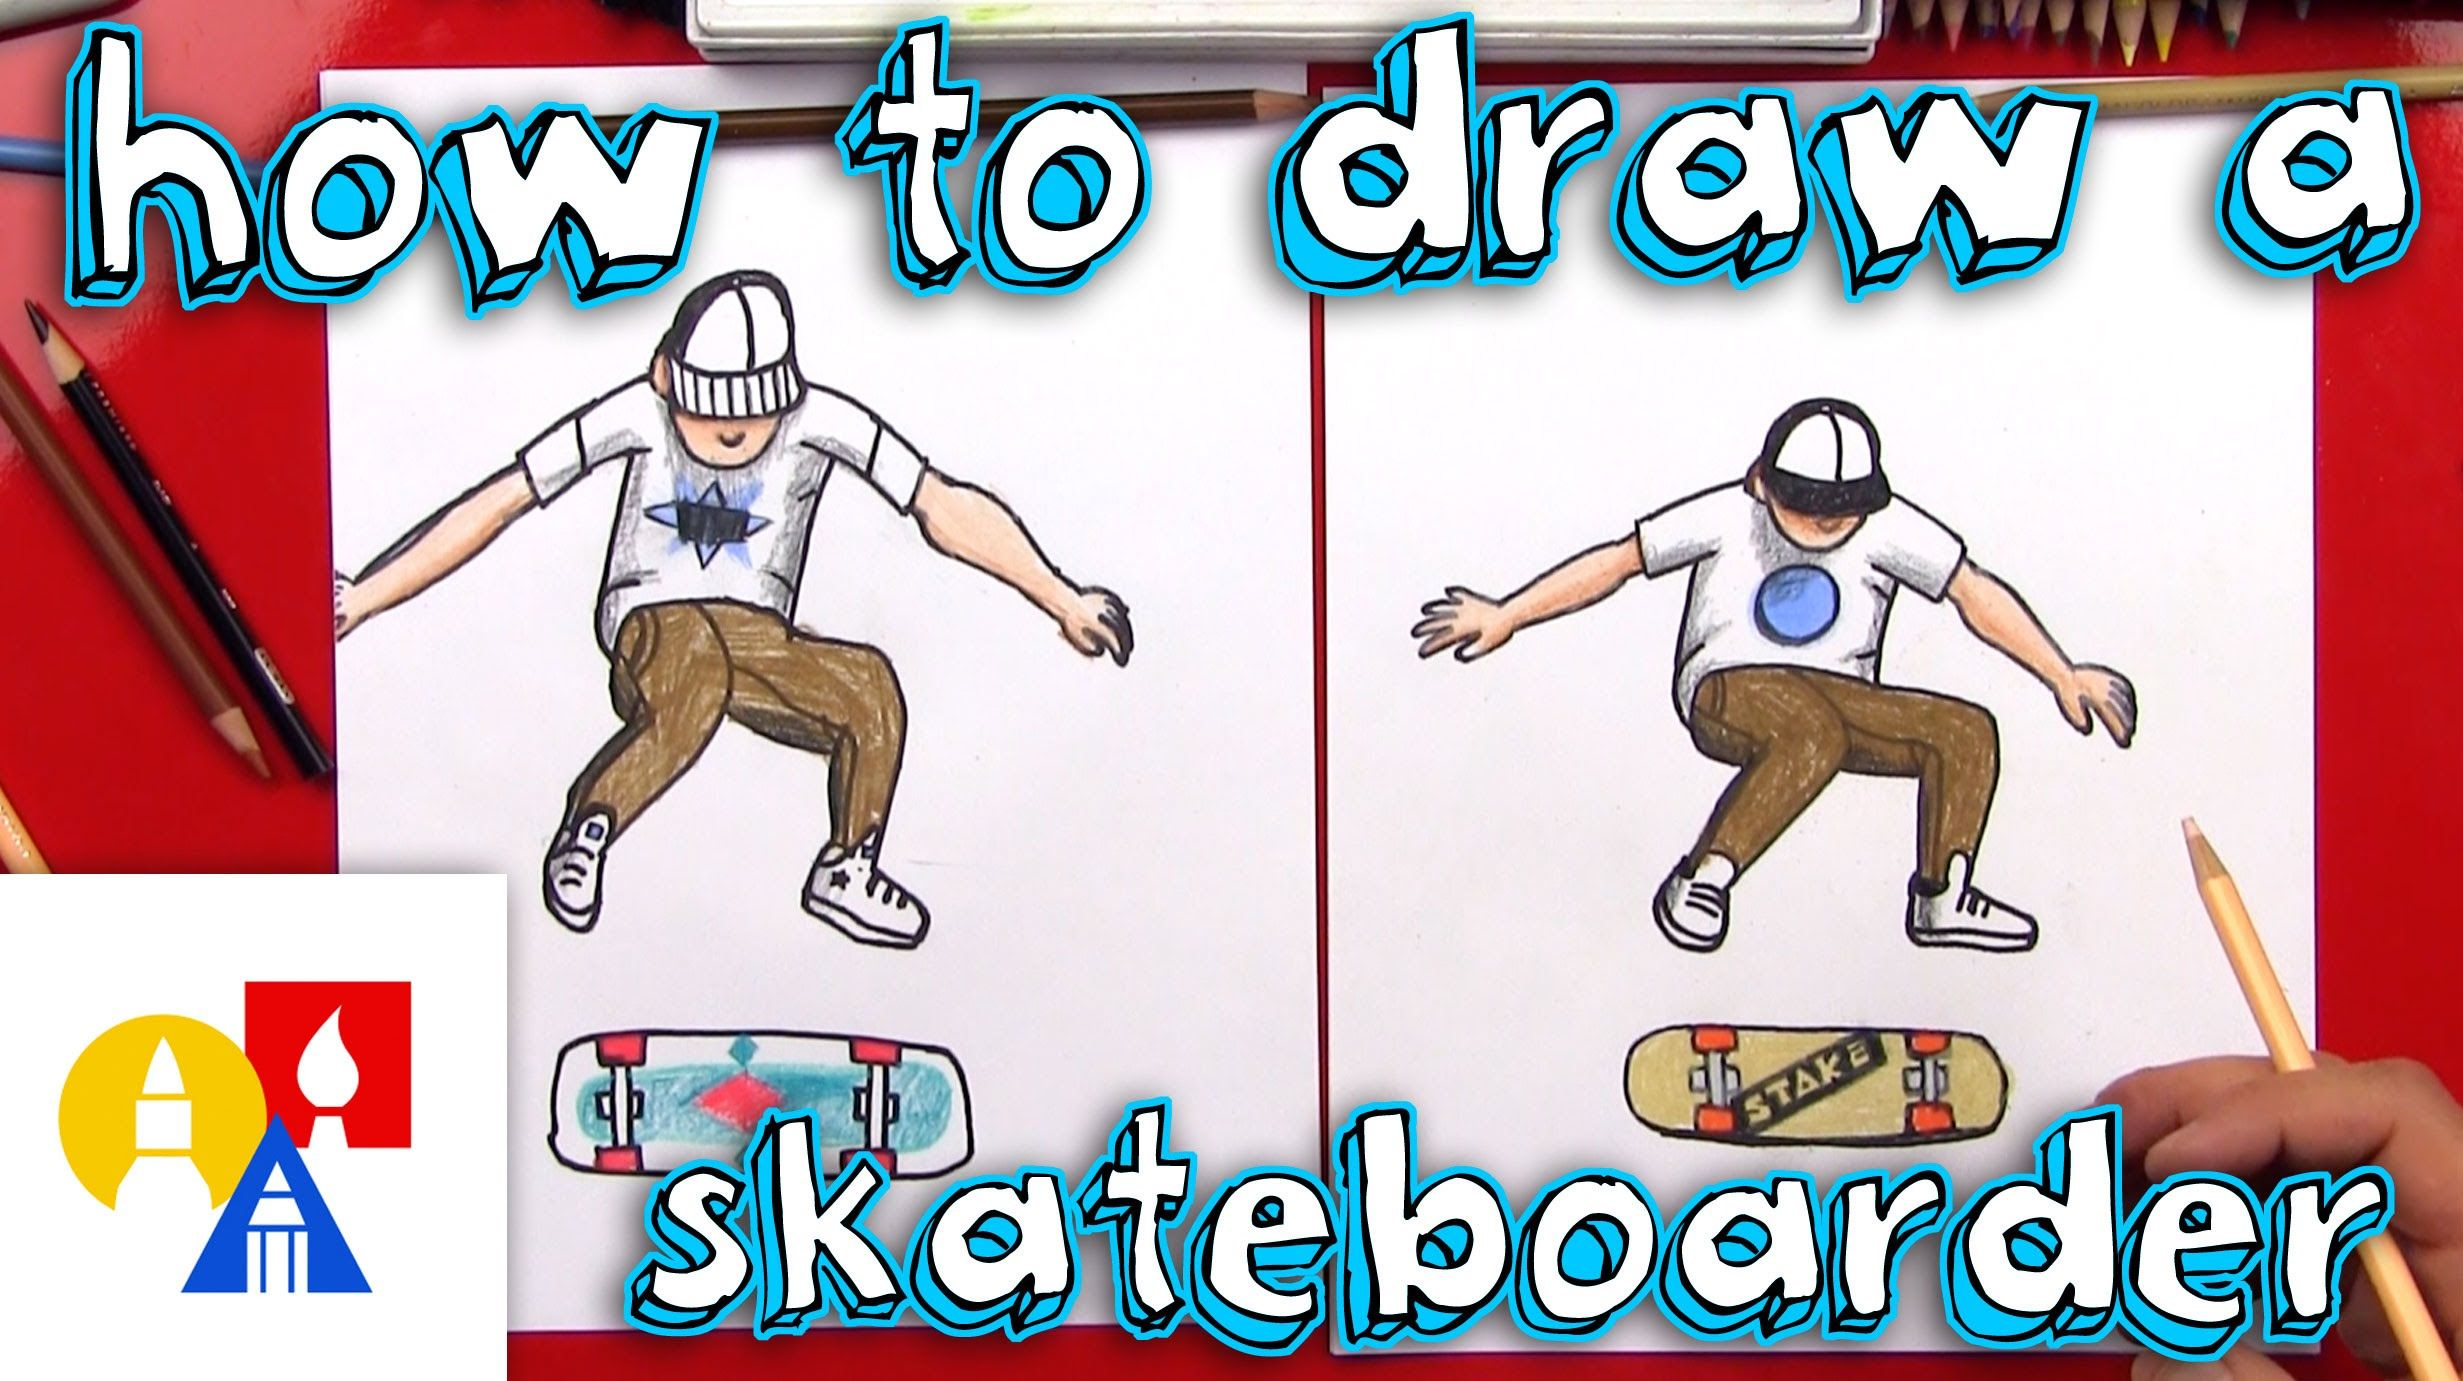 Learn How To Draw A Skateboarder Doing A Kickflip This Lesson Is Meant To Be Simple For Young Artists Art For Kids Hub Elementary Art Projects 7th Grade Art